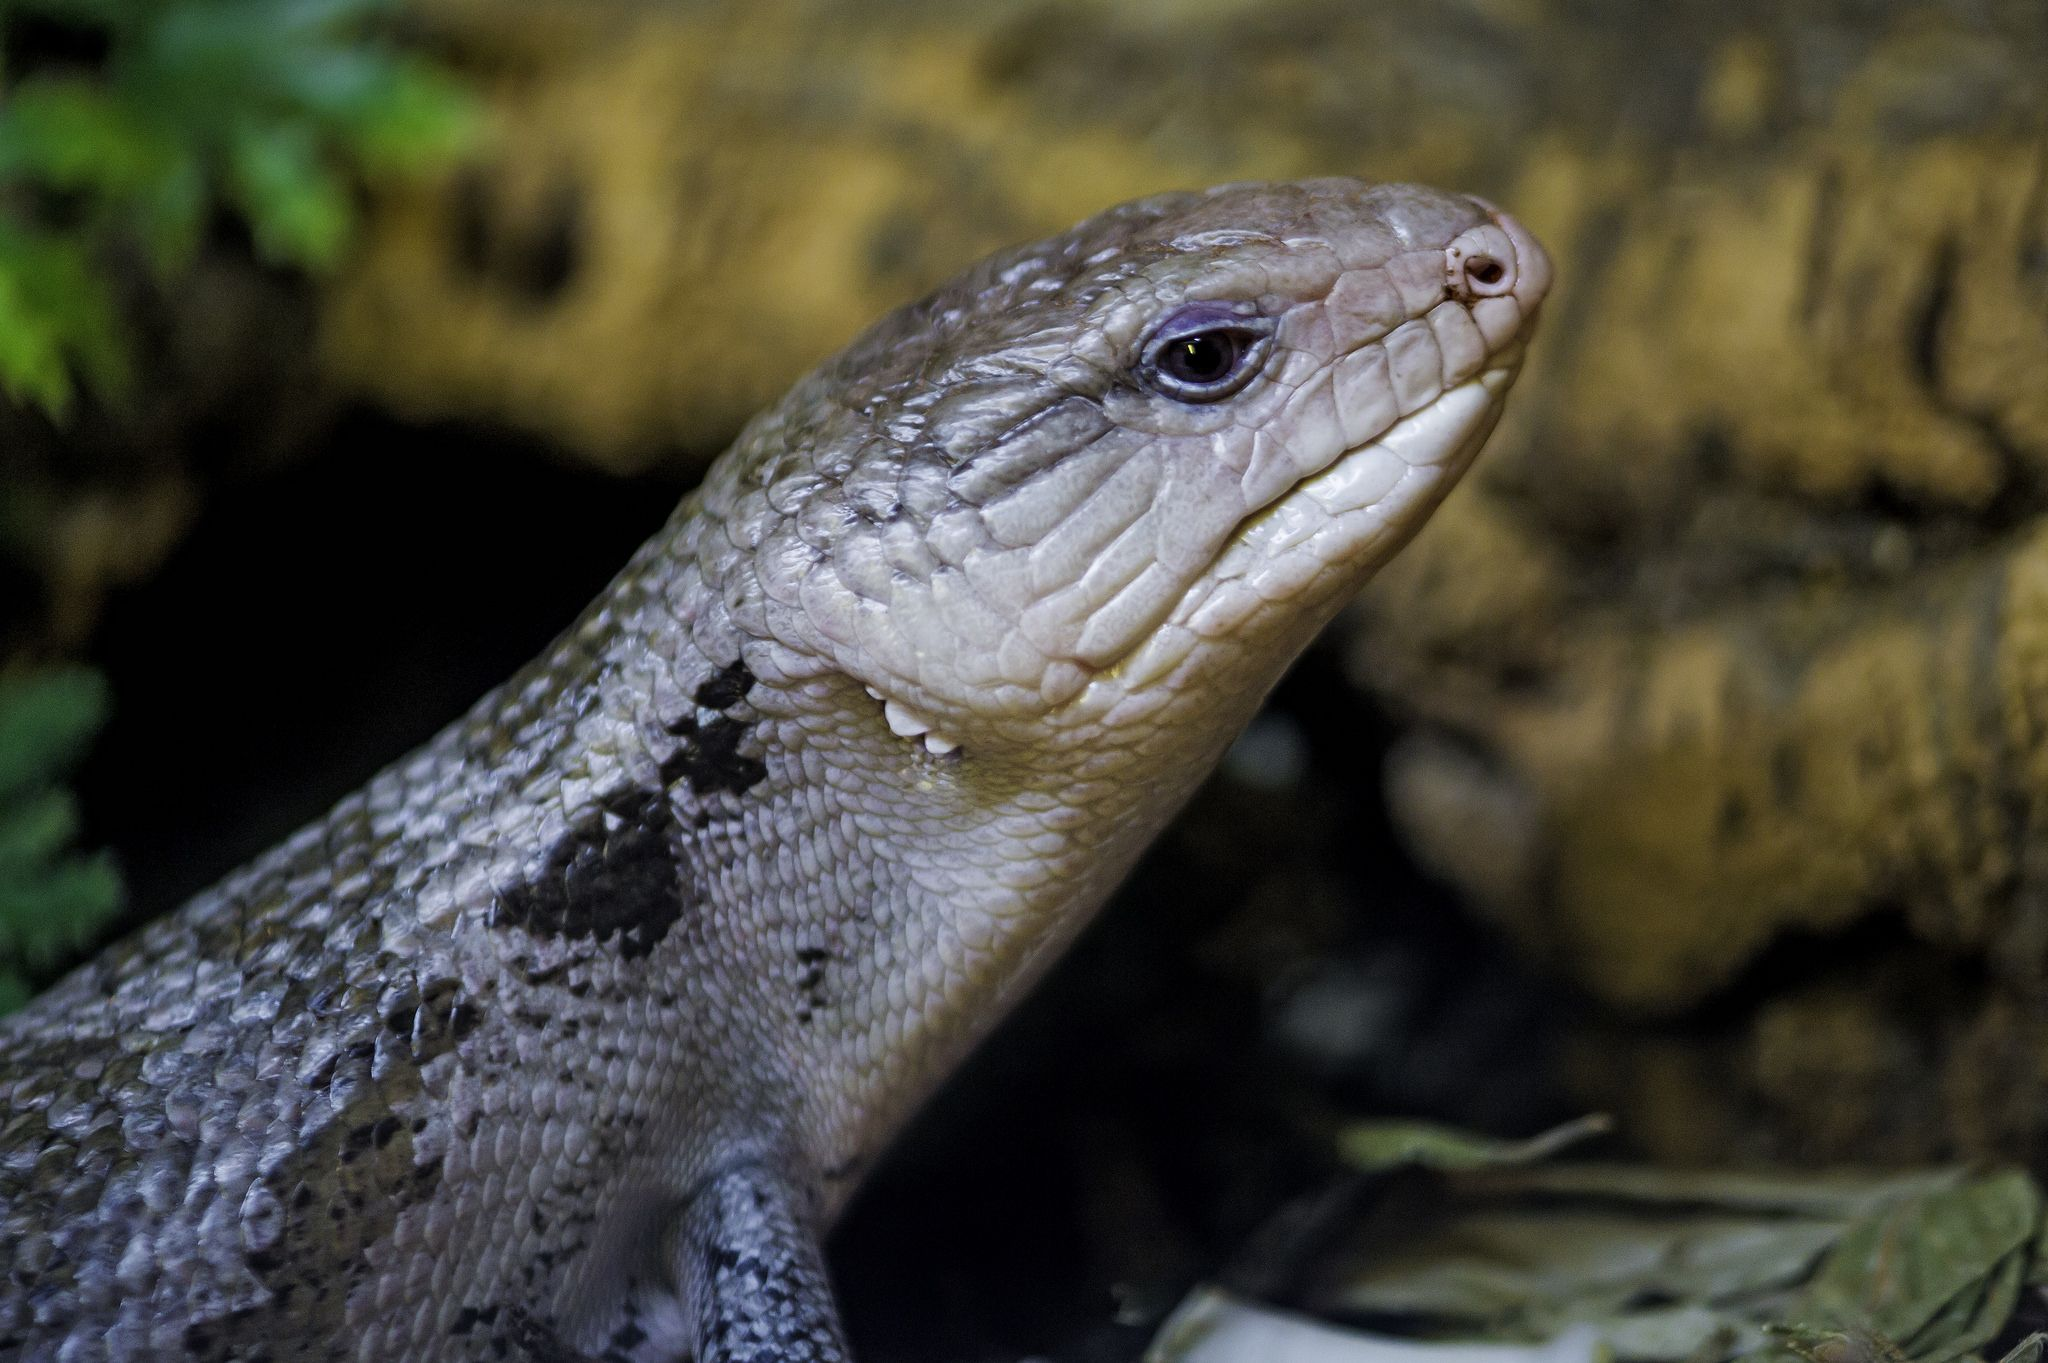 https://flic.kr/p/EBBbQt | Almost blue lizard | Portrait of one of the reptiles of the zoo. Its name is the Eastern blue-tongued lizard.